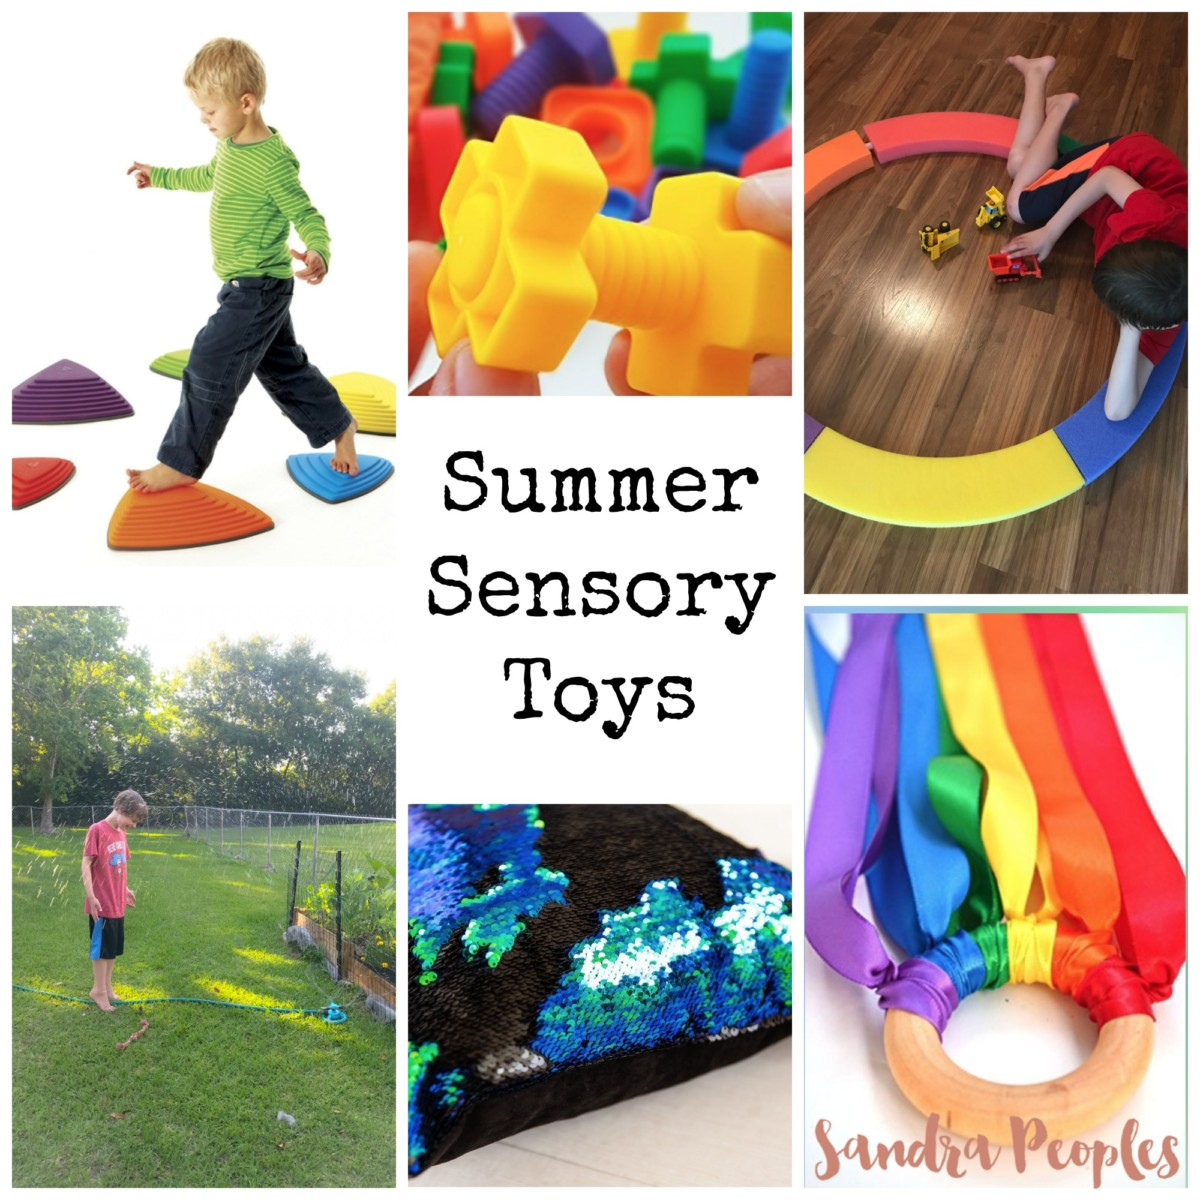 Sensory Toys to Add Fun to Your Summer!